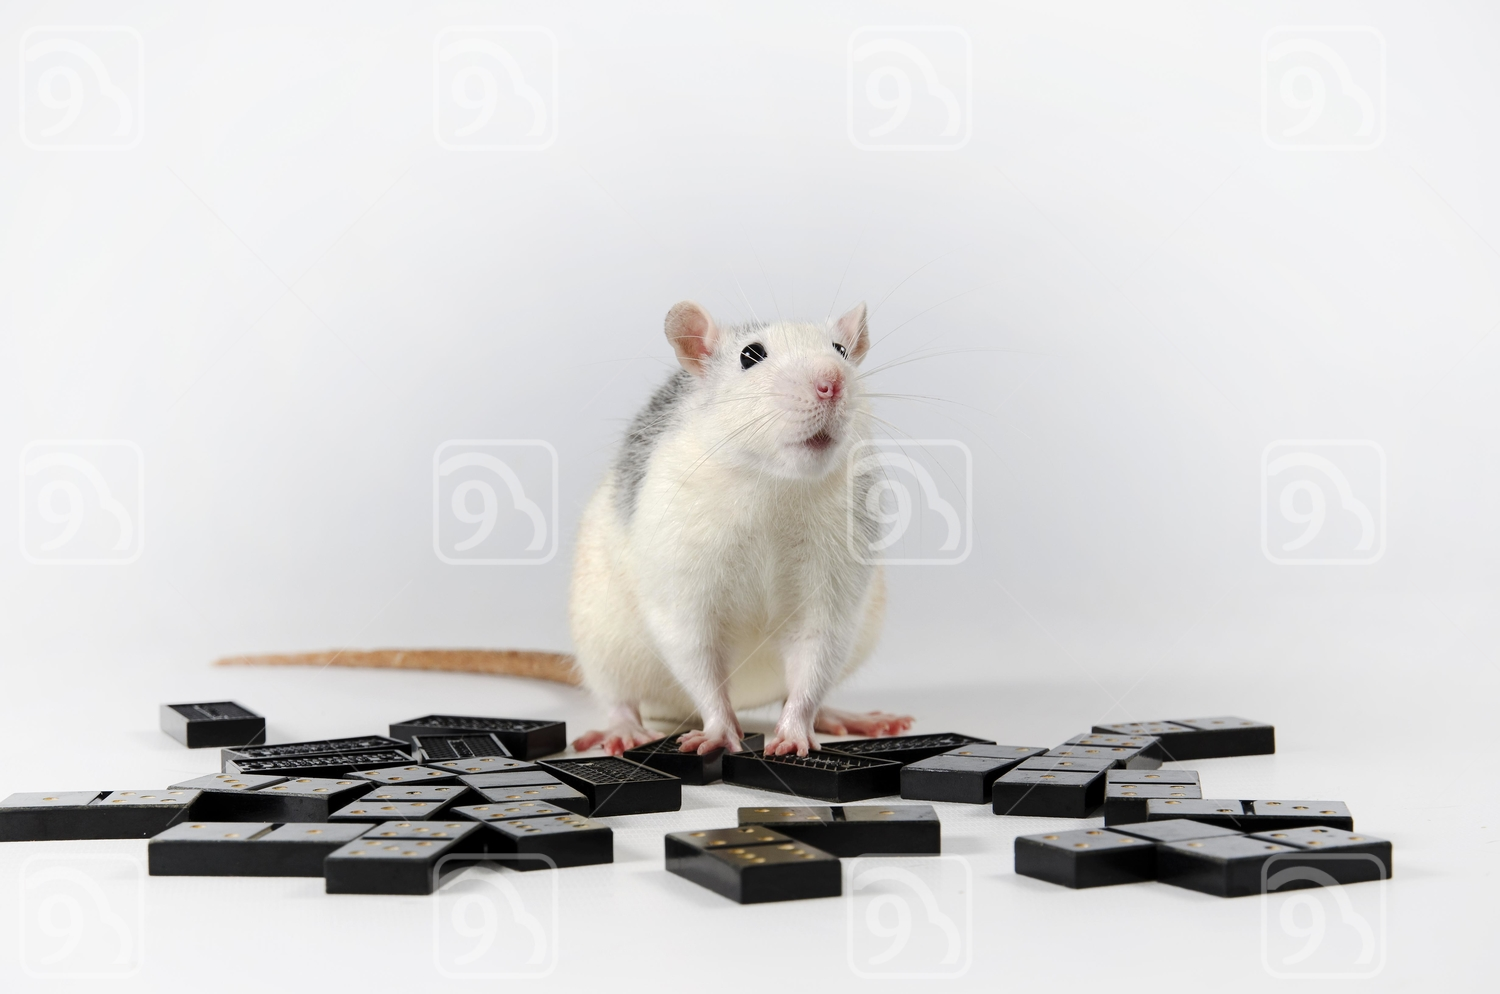 White Rat and dominoes.